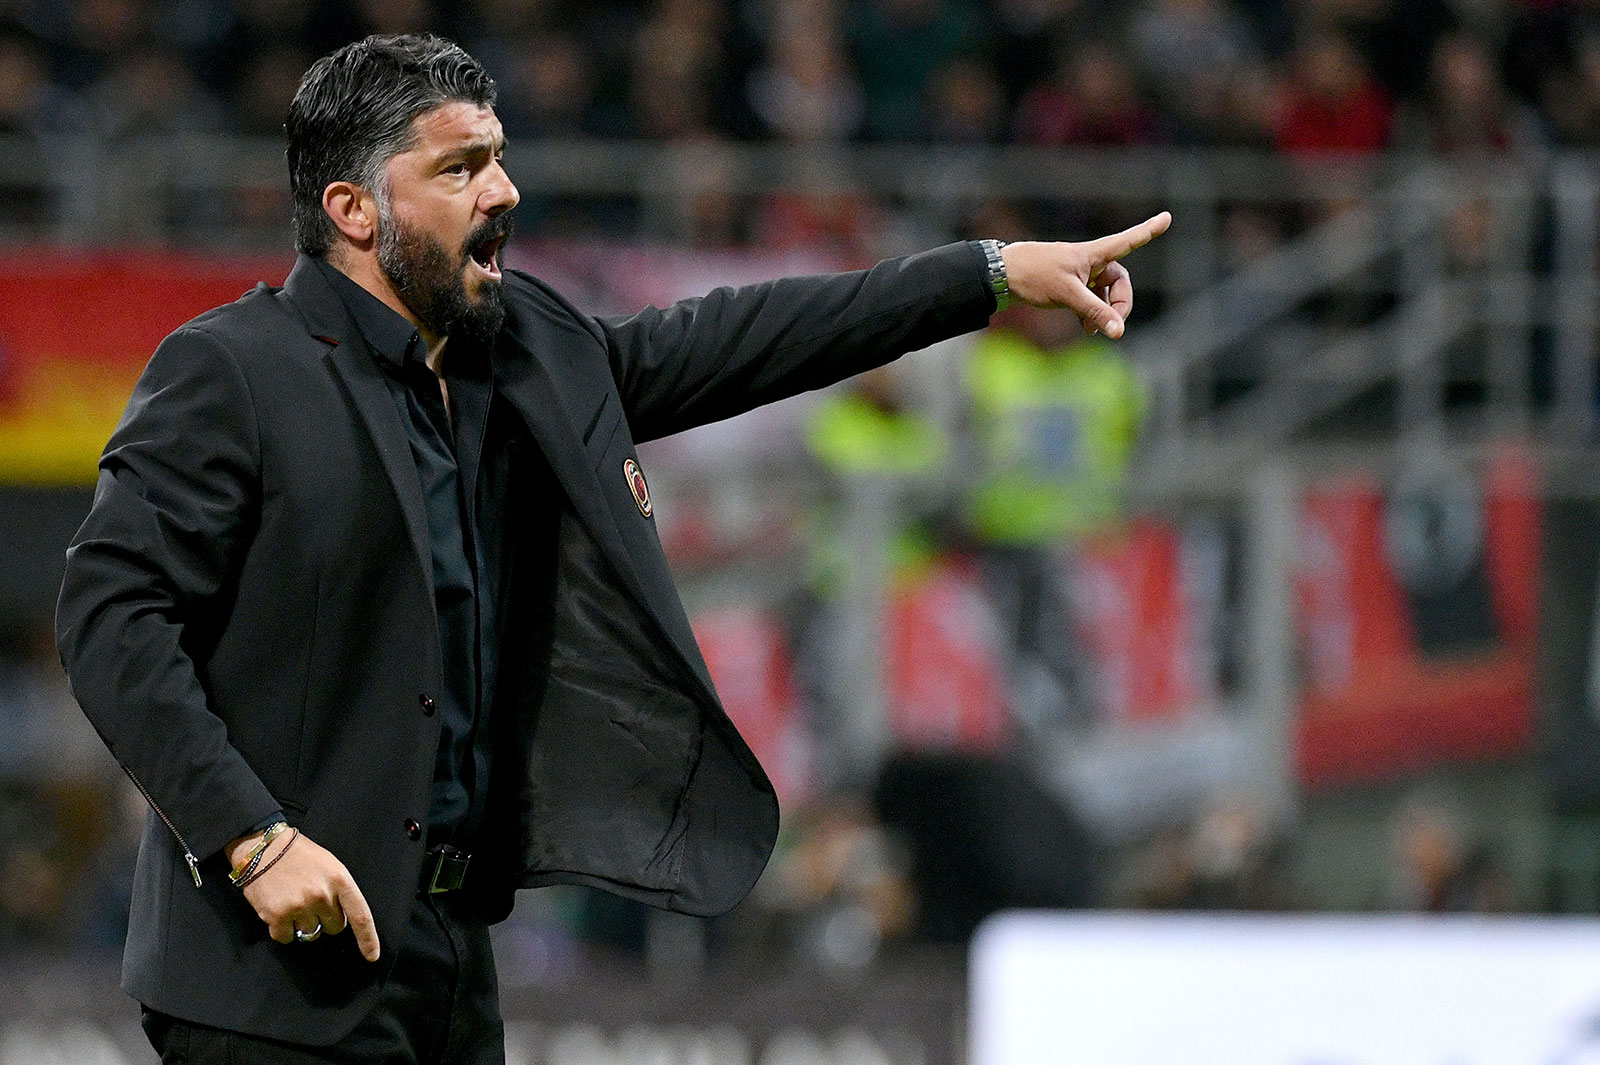 Gennaro Gattuso during Milan-Lazio at Stadio San Siro on April 24, 2019. (Photo by Marco Rosi/Getty Images)